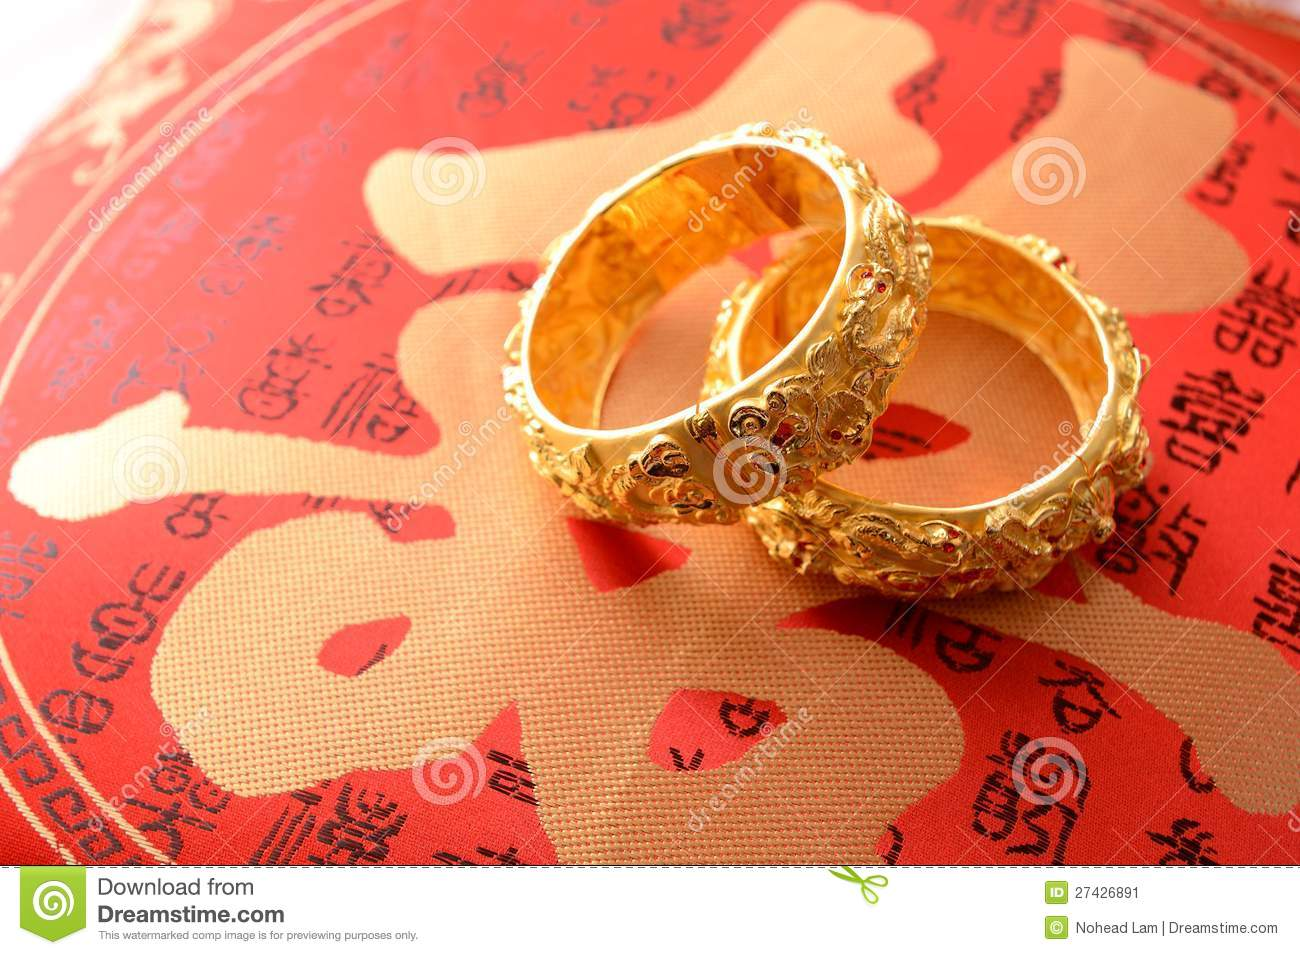 Asian brides gifts page from